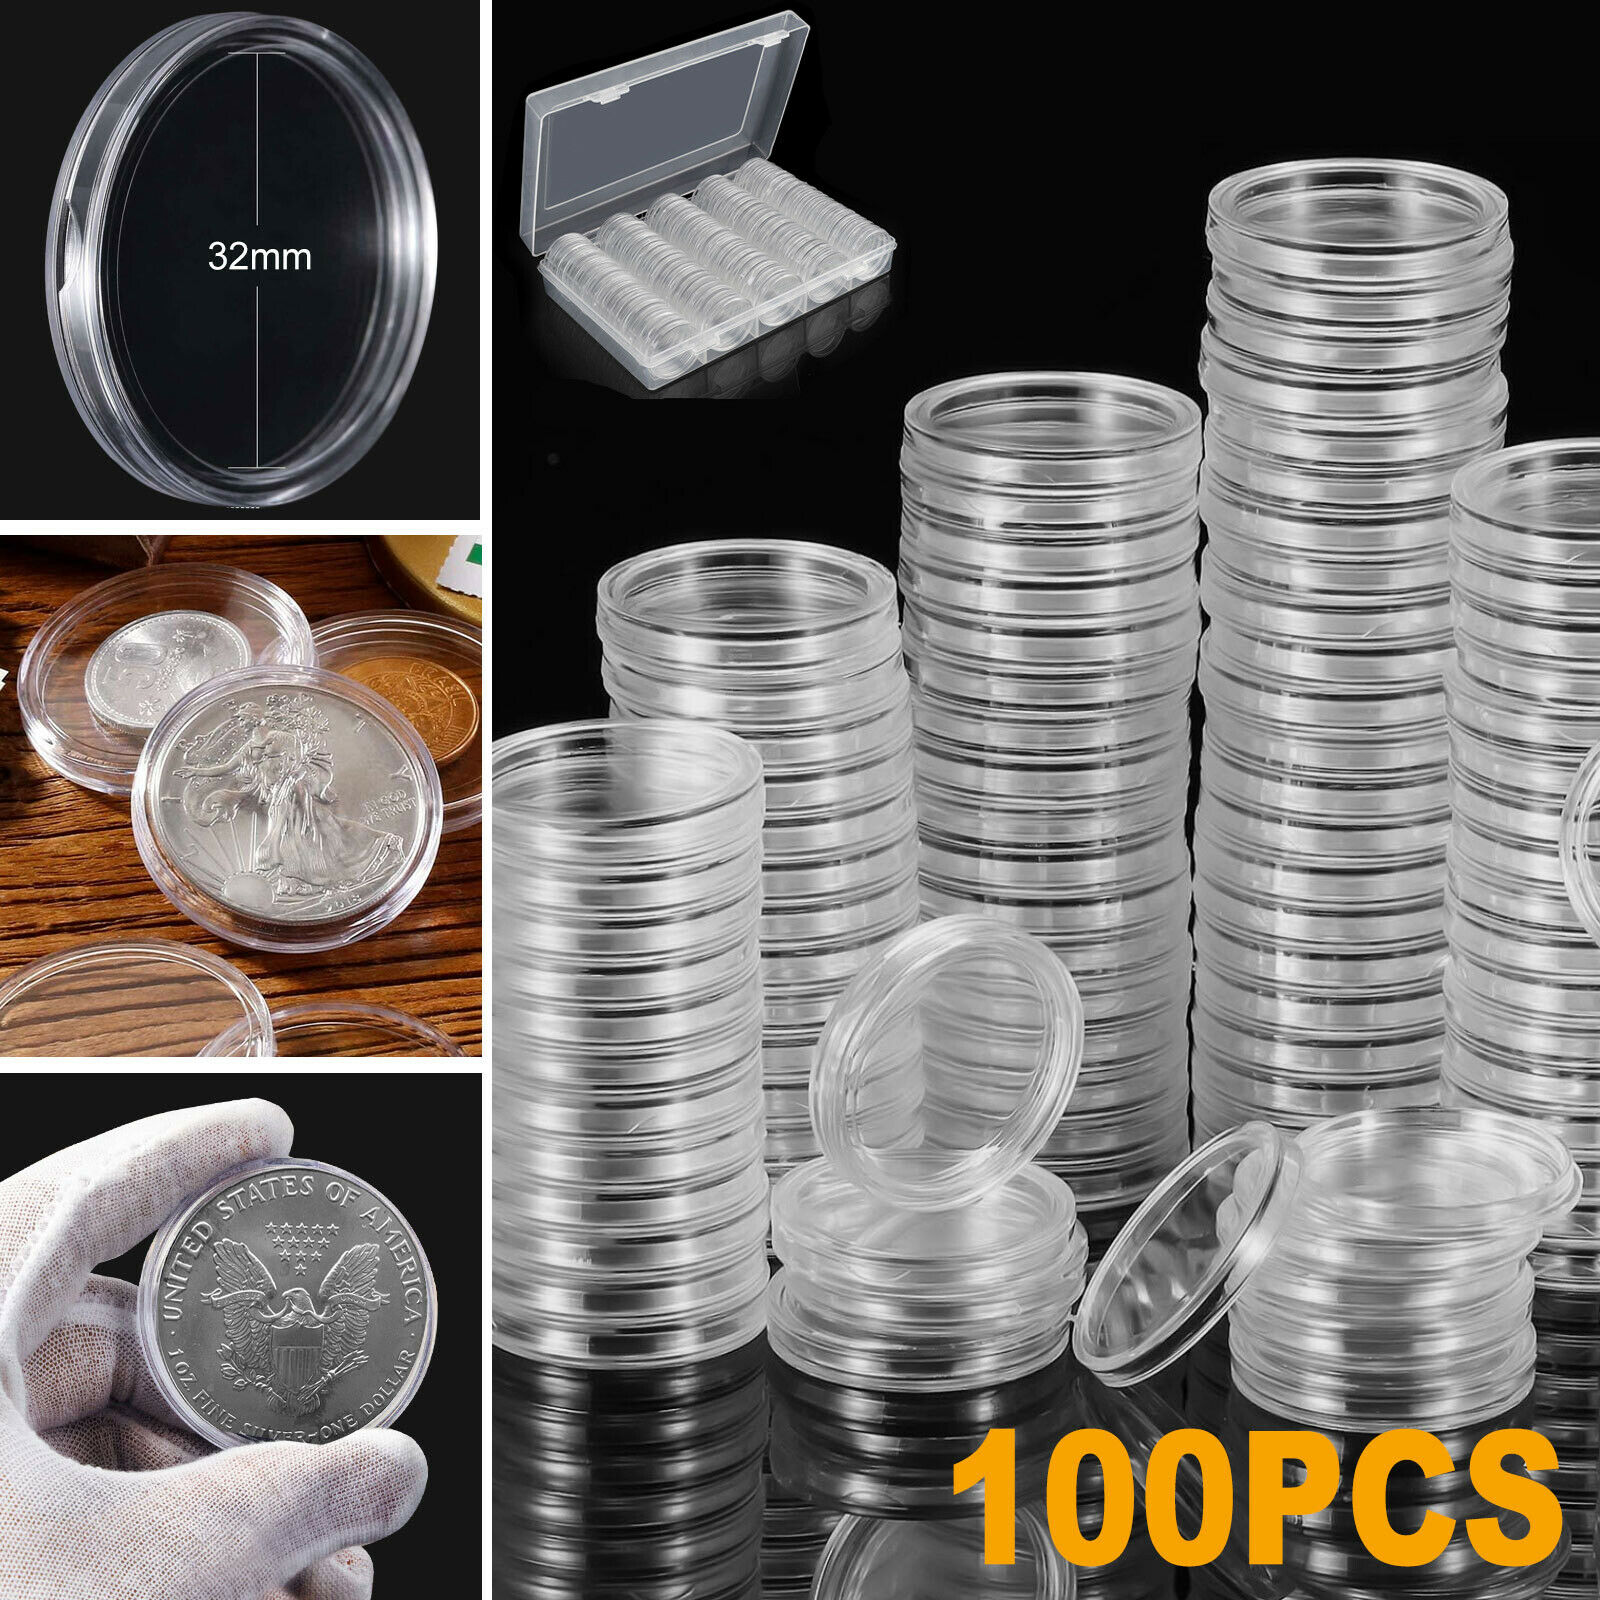 100pcs Clear Cases Coin Capsules Storage Box Display Stands Container